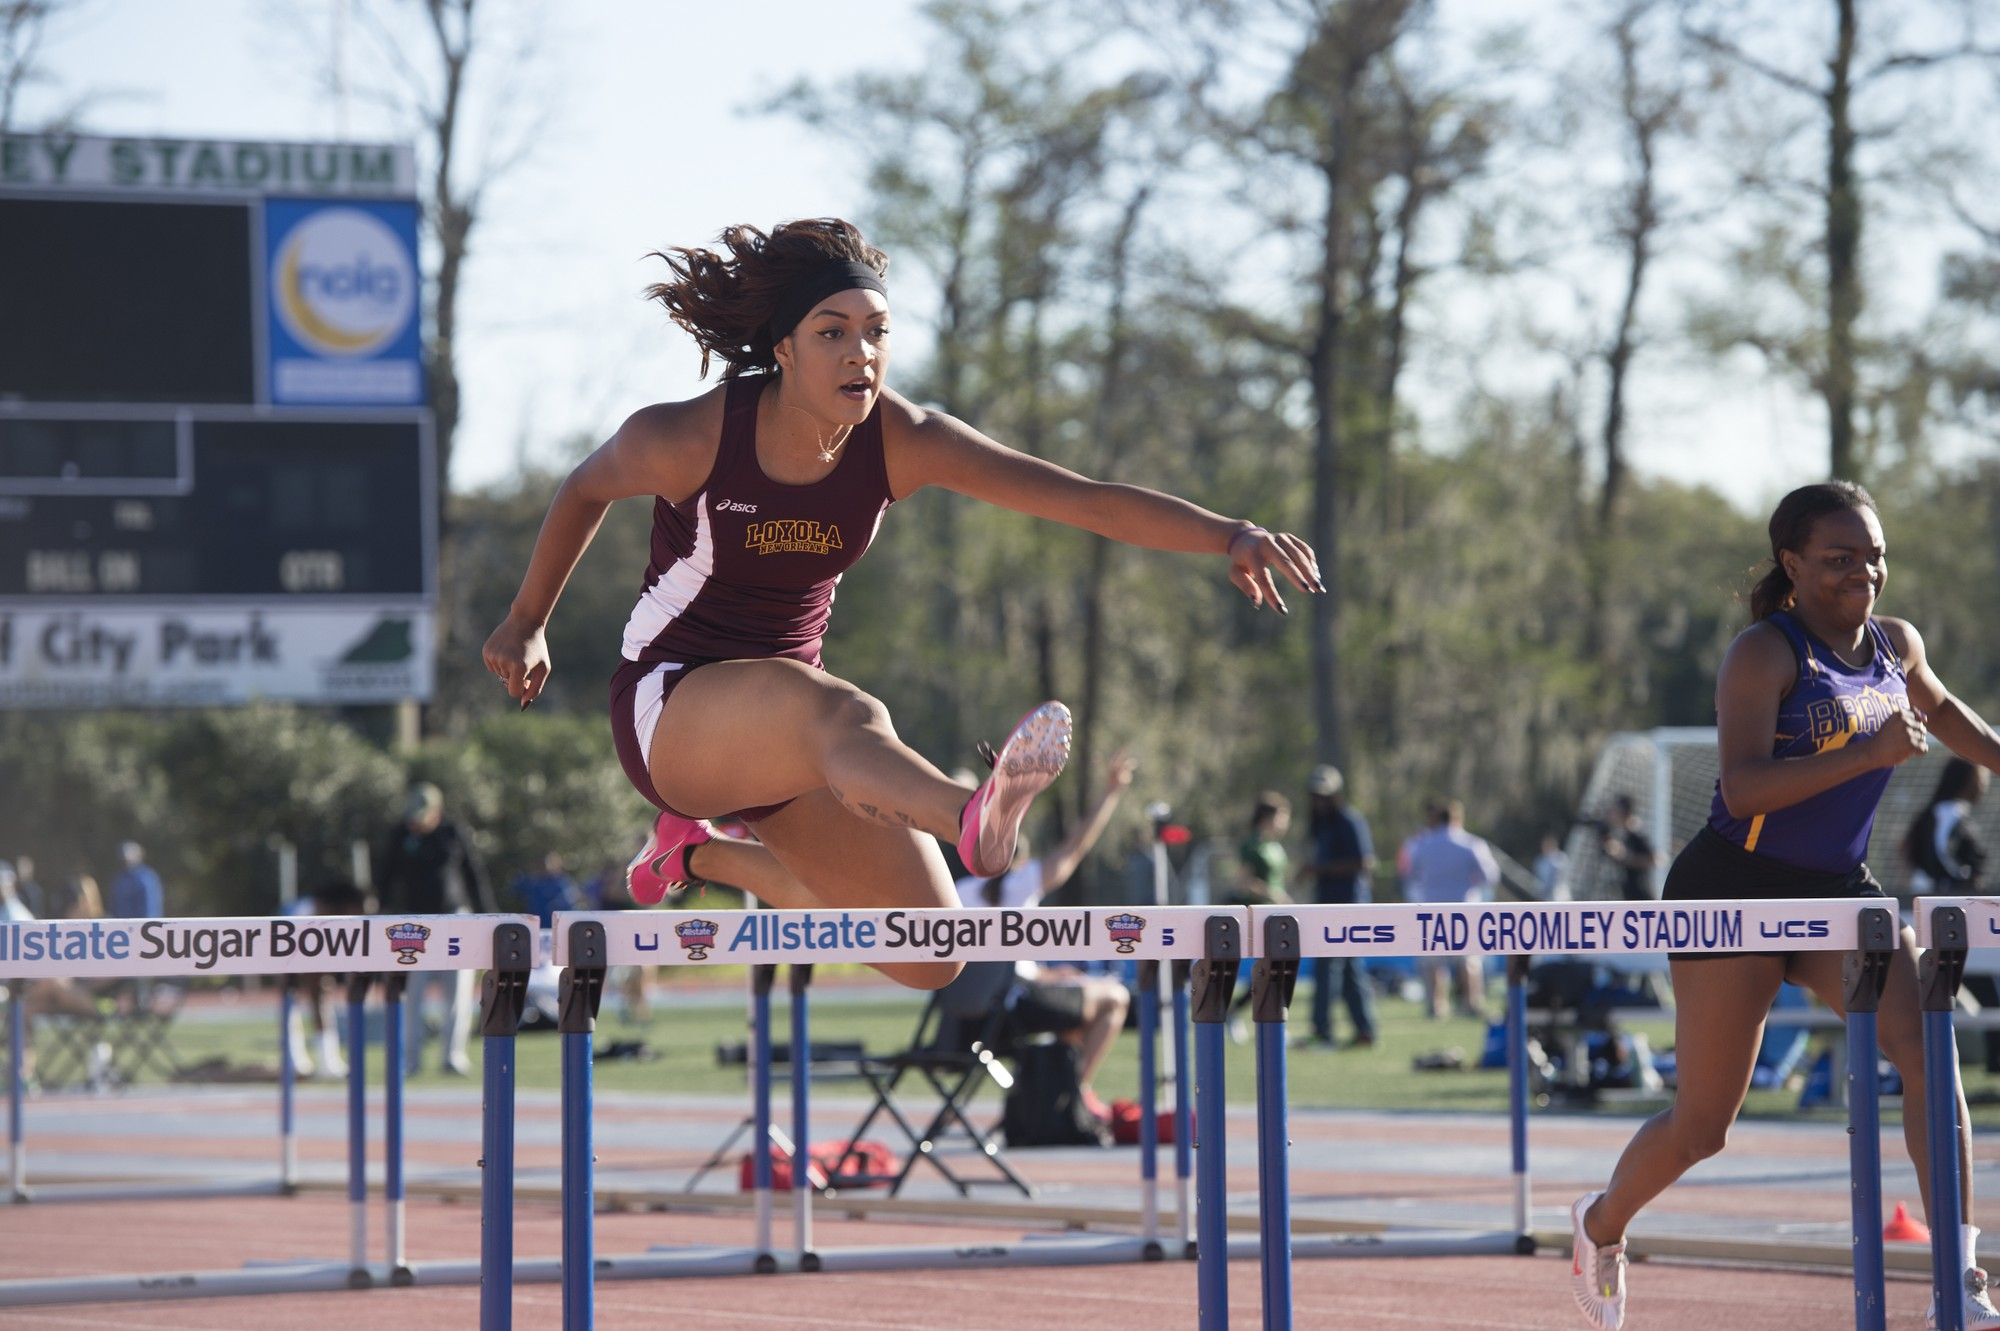 Sophomore Asia Marie Kelly jumps over a hurdle at the Tulane Twilight Invitational on March 4, 2016. Photo credit: Courtesy of the Athletic Department